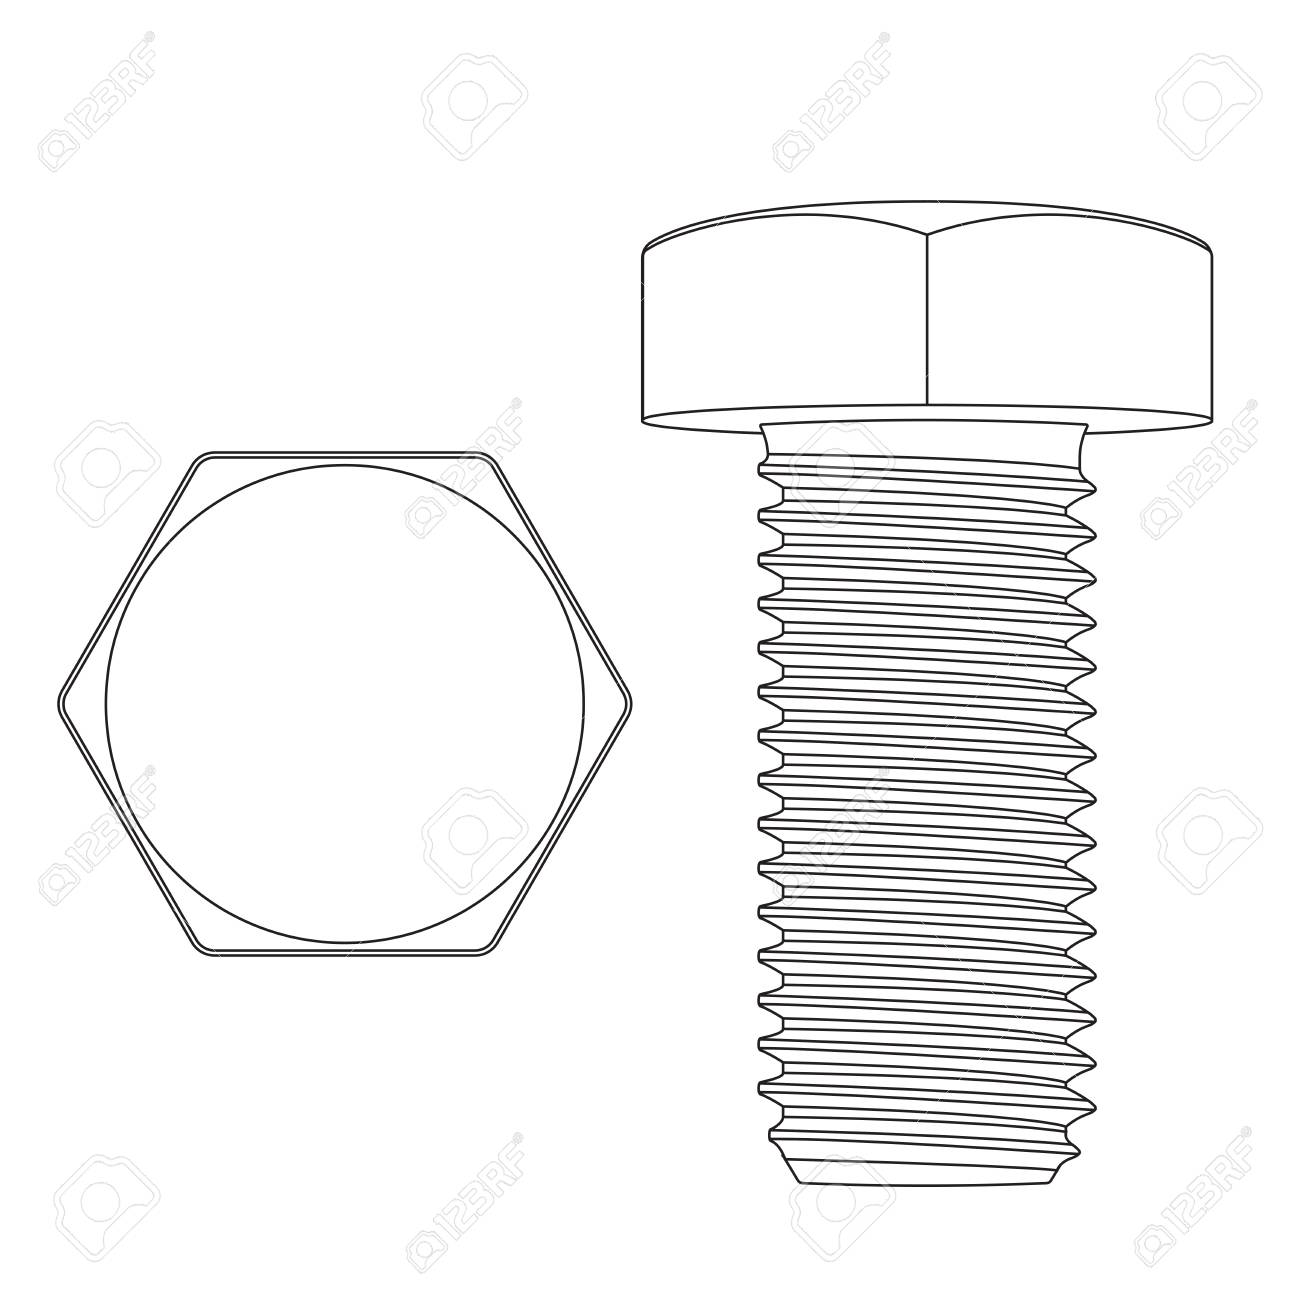 hight resolution of metal hex bolt white outline icon stock vector 97610727